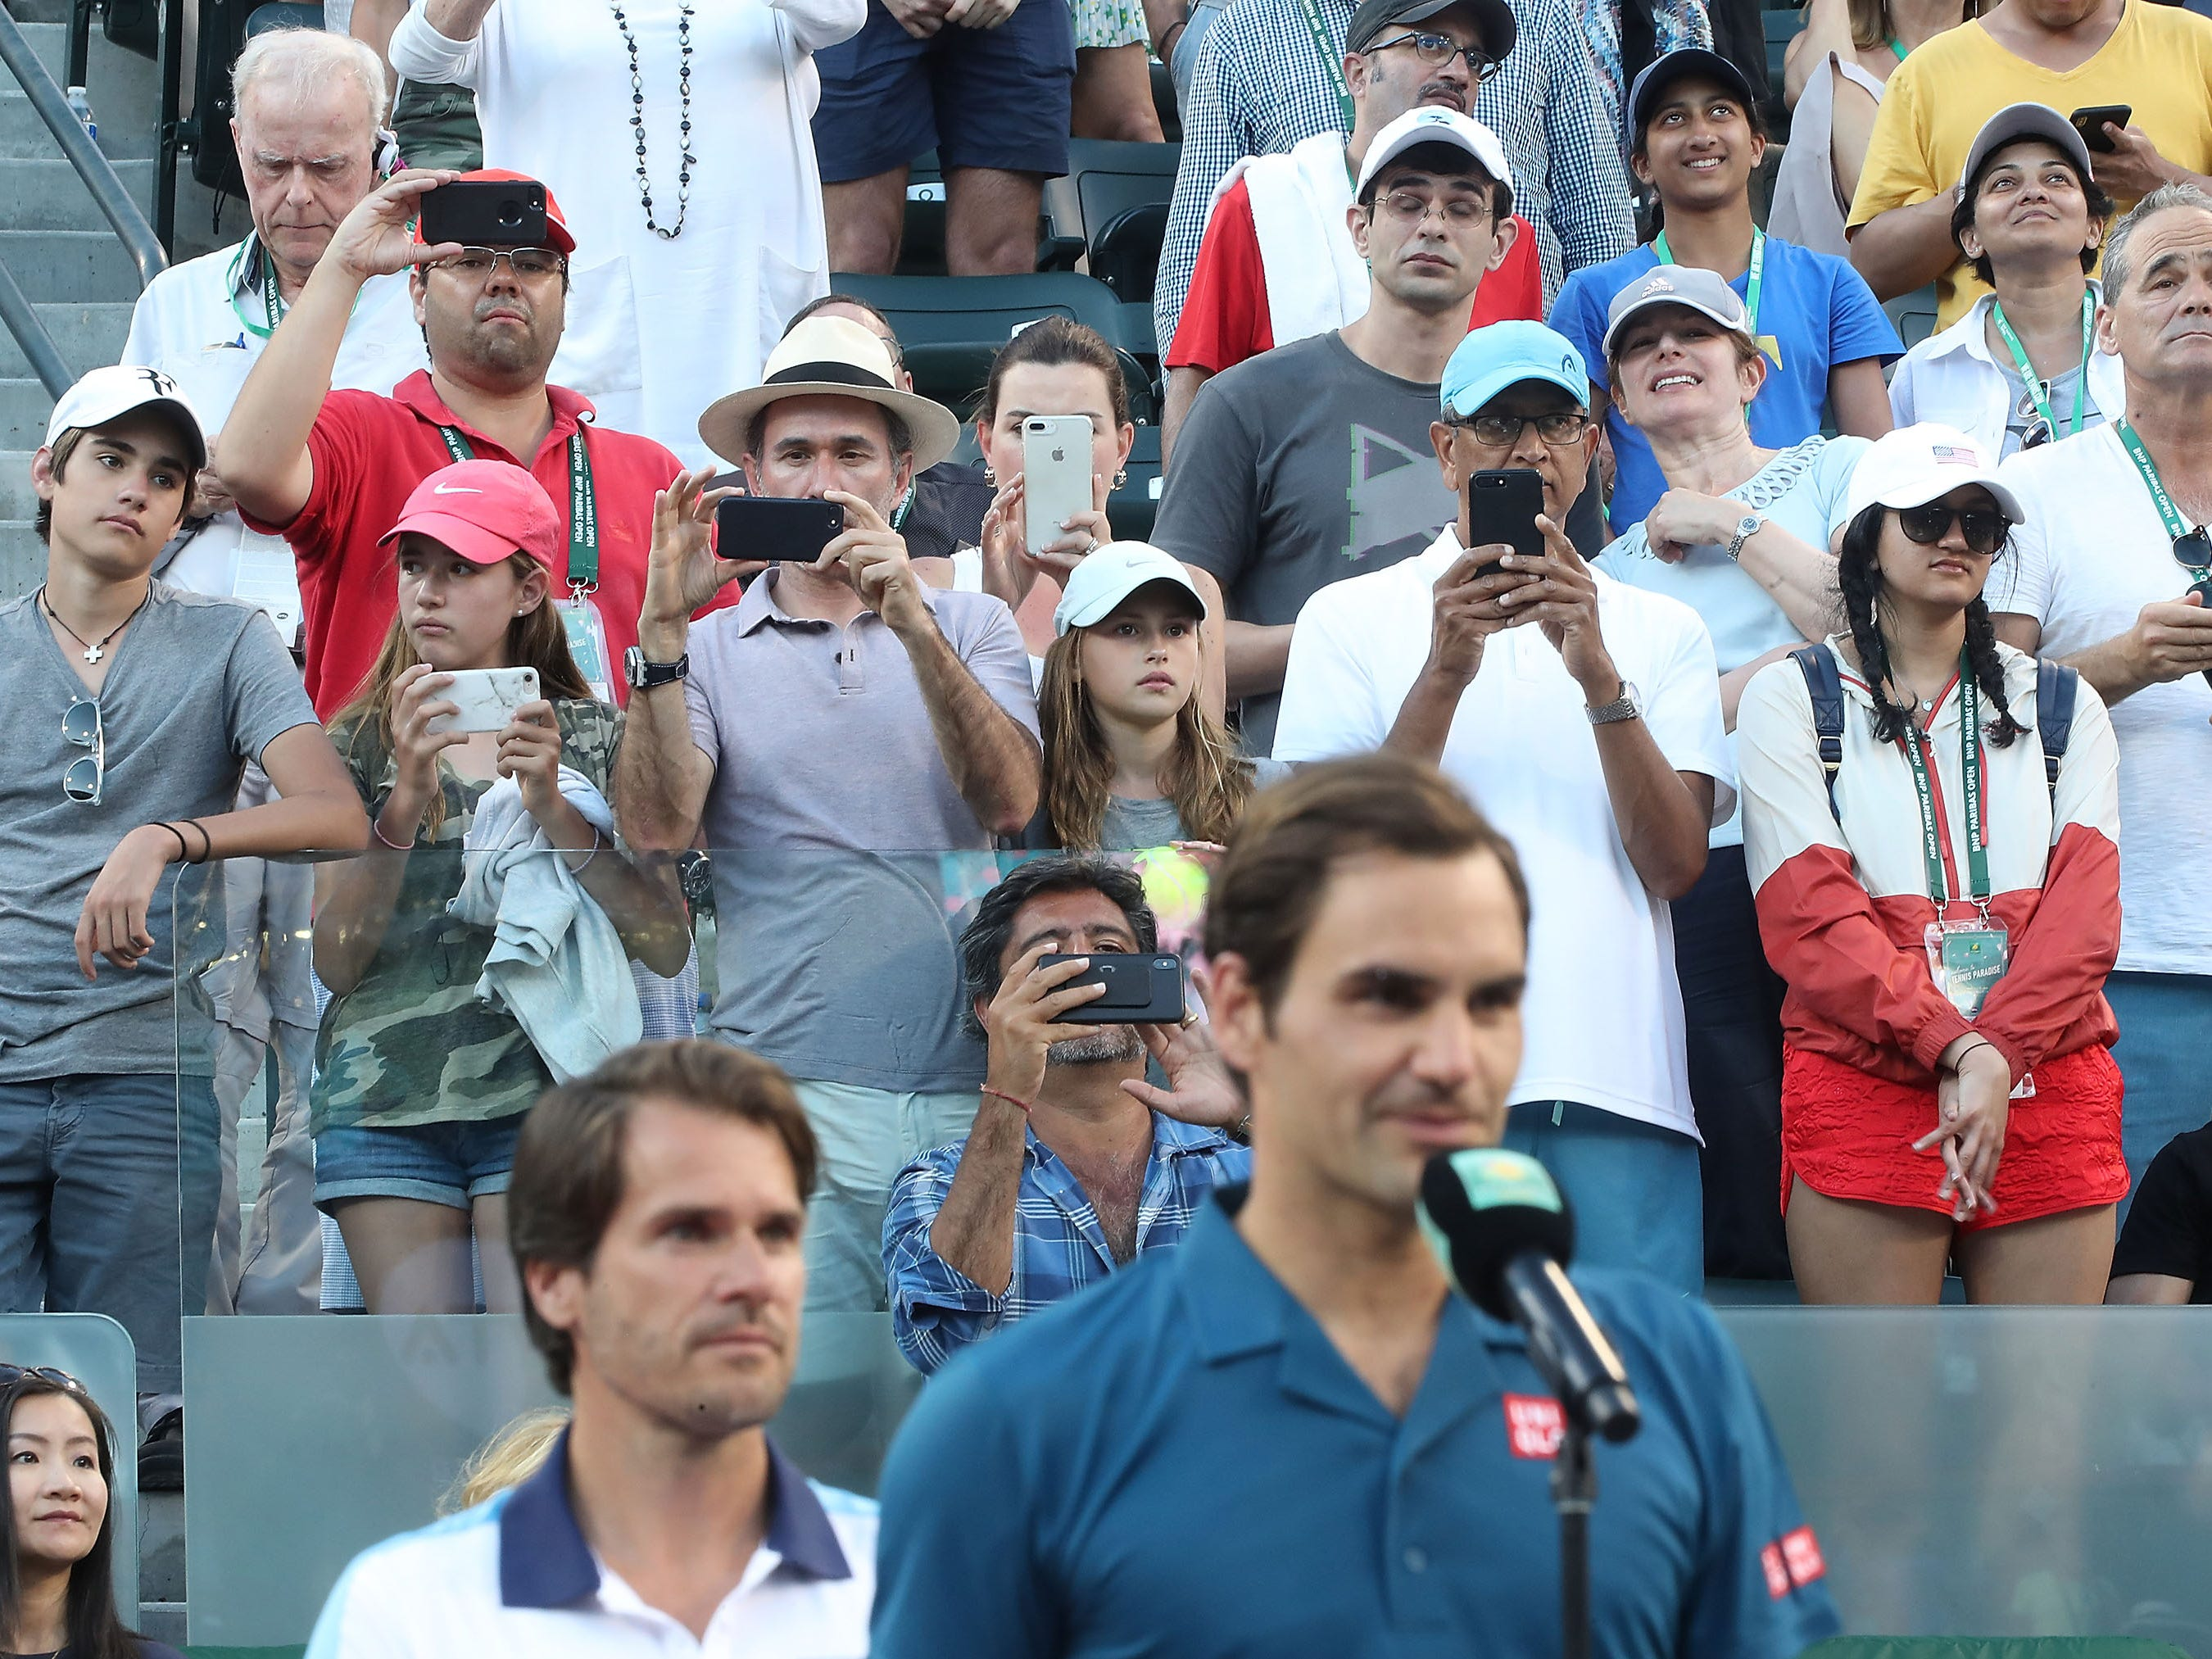 Fans take photos of Roger Federer at the Paribas Open final in Indian Wells, March 17, 2019.